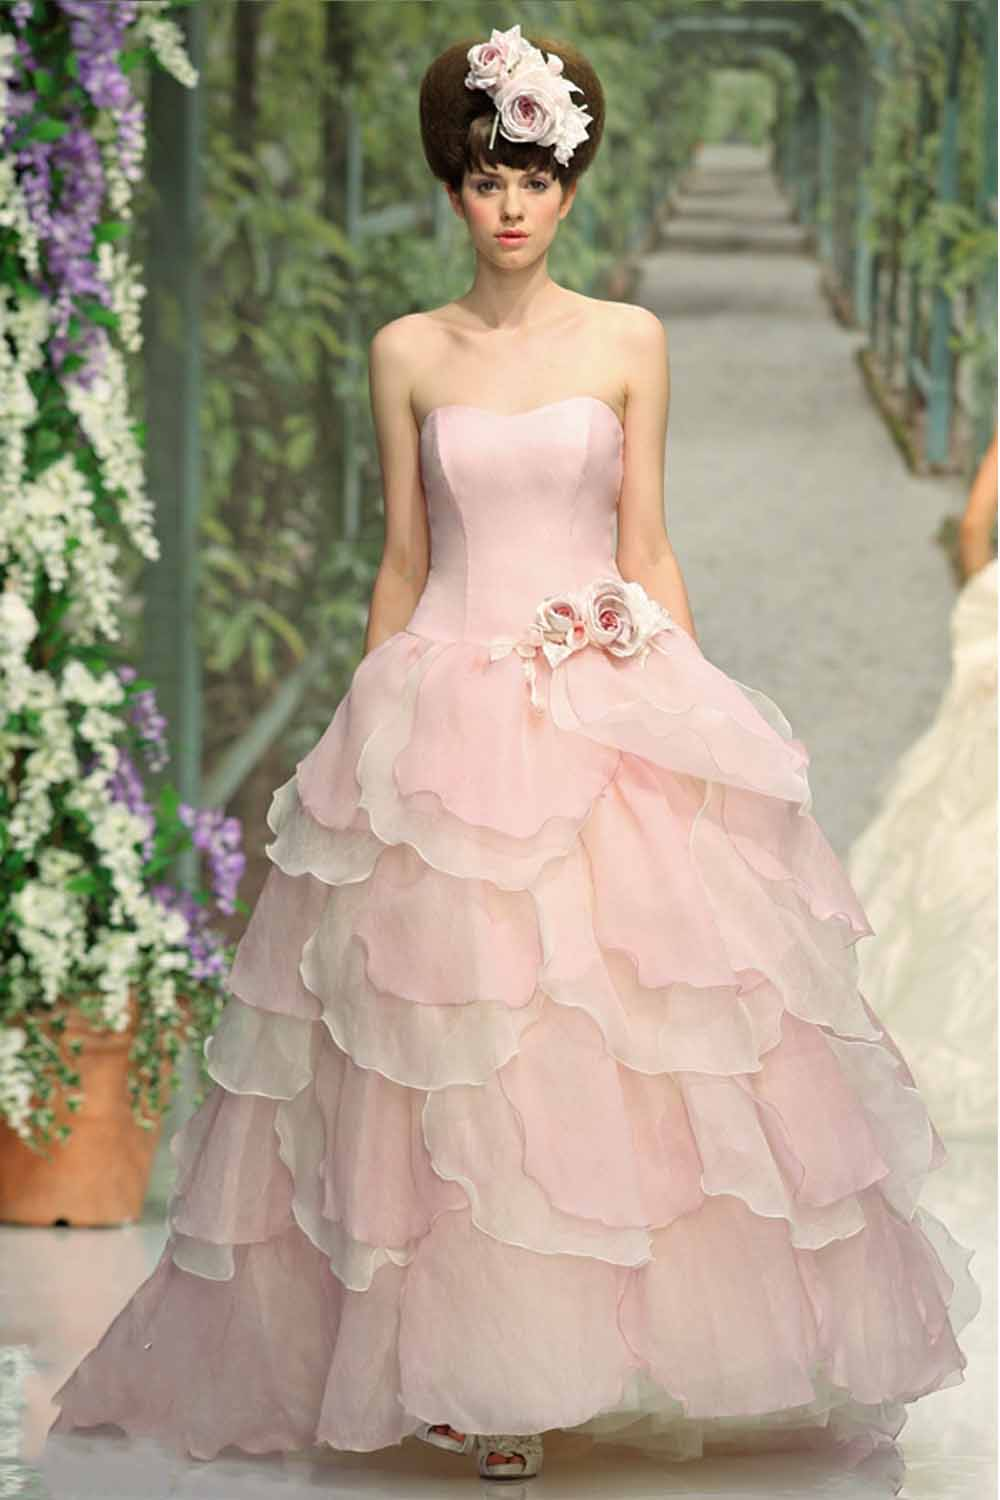 Fashionable styles of Pink Wedding Dress - 24 Dressi